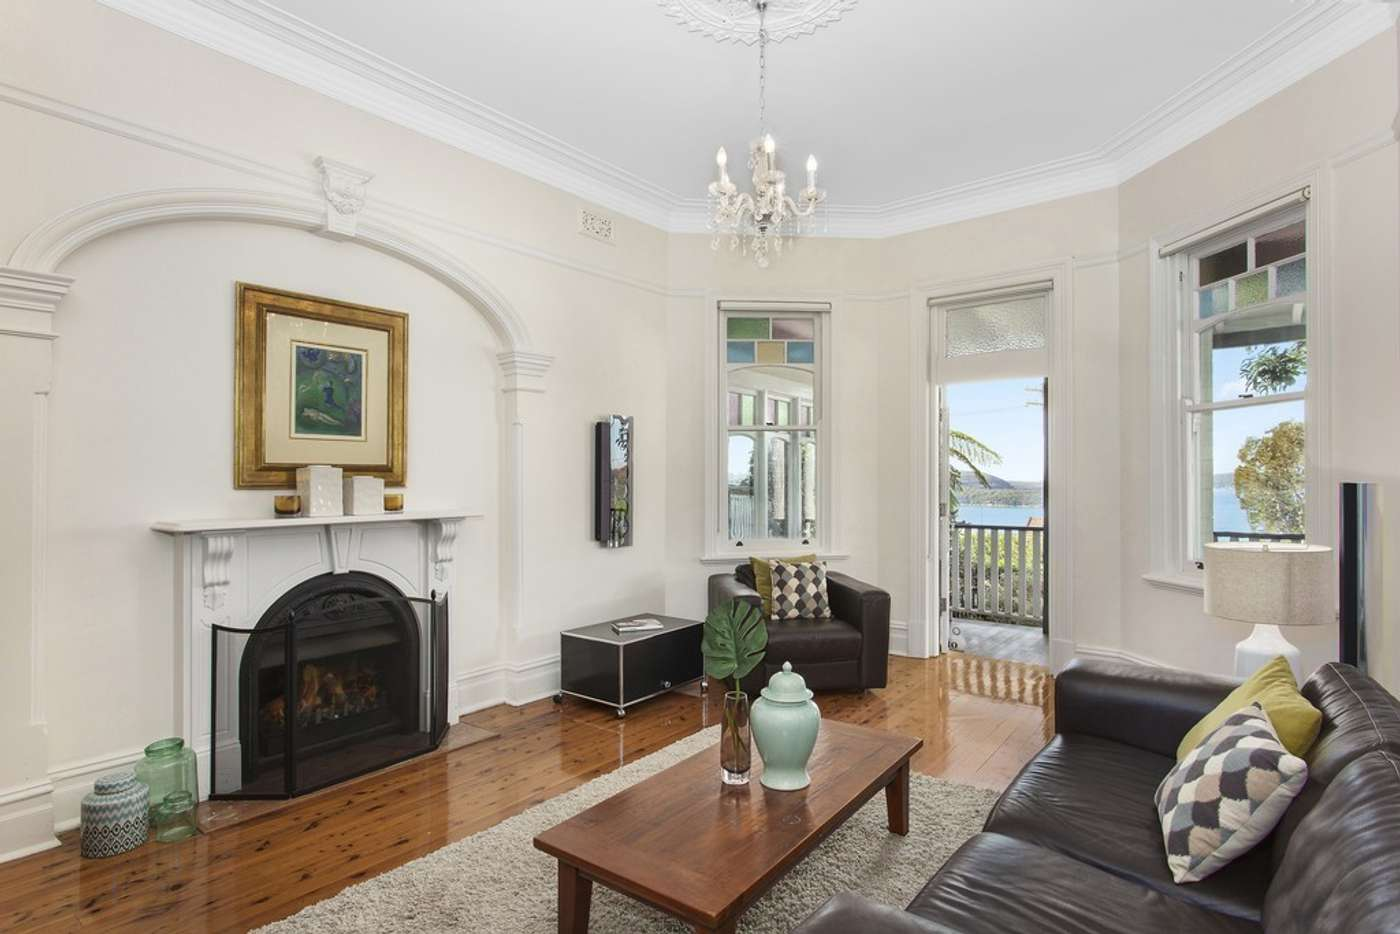 Fifth view of Homely house listing, 35 Upper Almora Street, Mosman NSW 2088